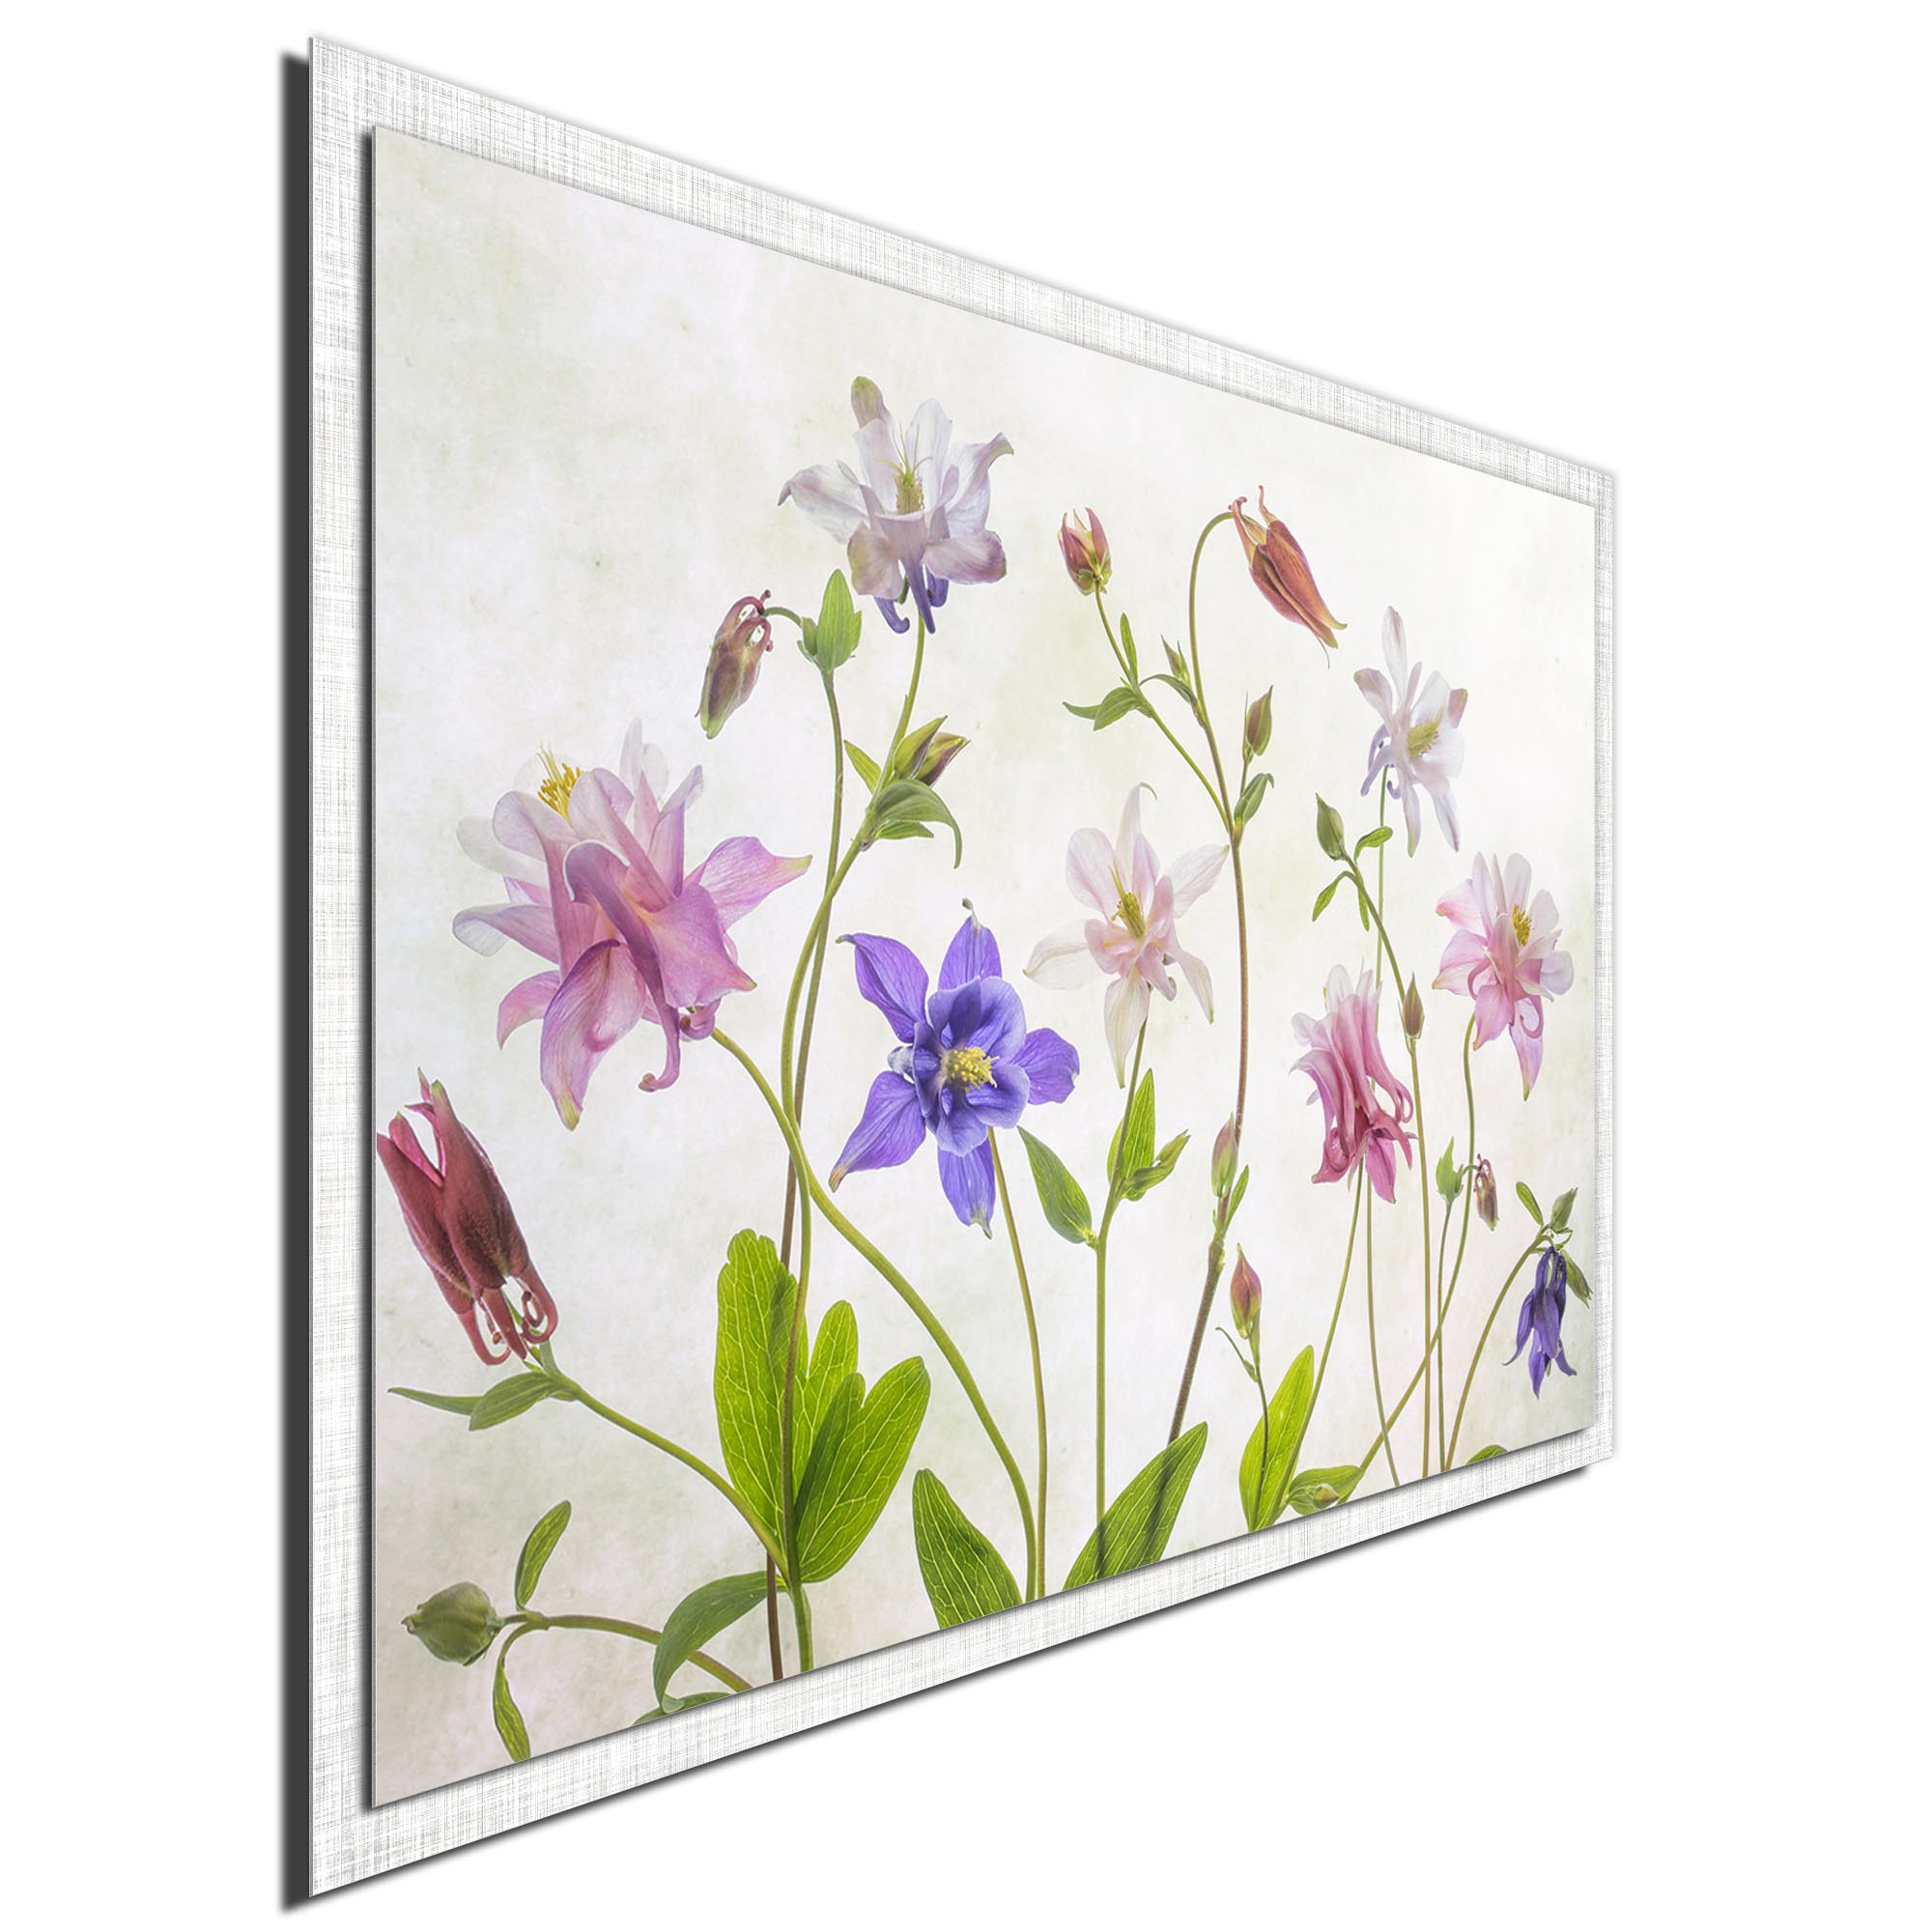 Columbine by Mandy Disher - Modern Farmhouse Floral on Metal - Image 2